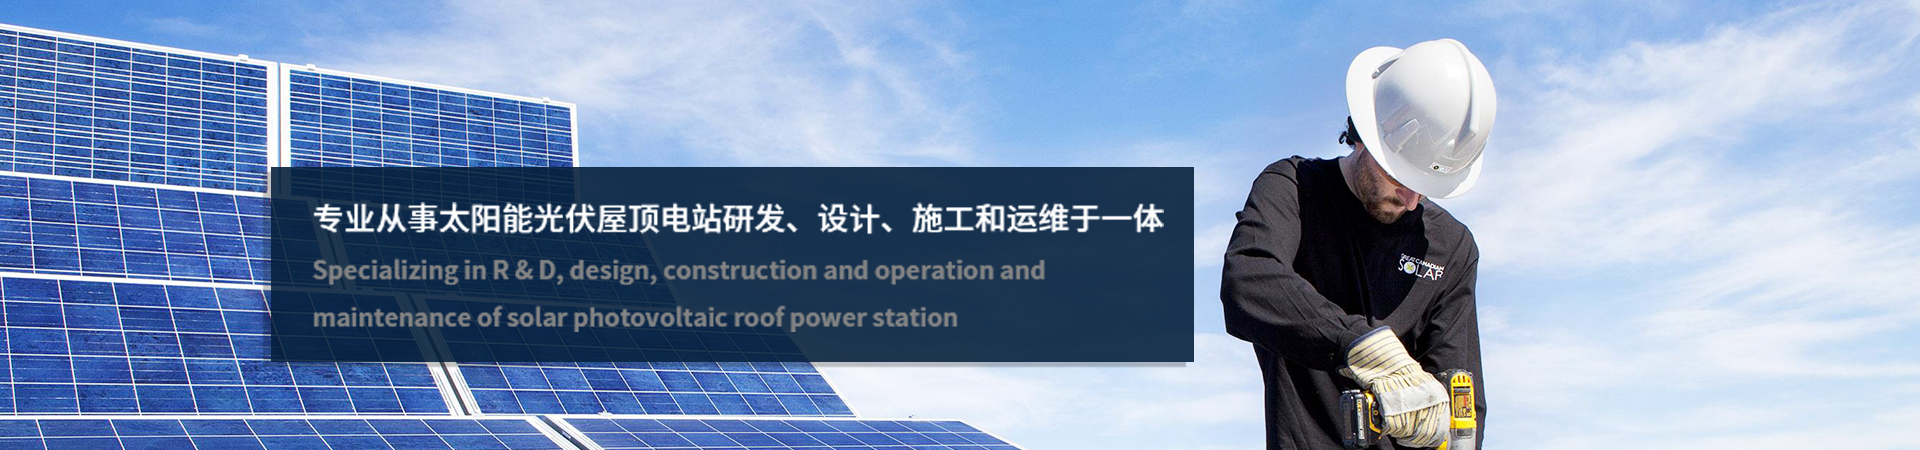 http://www.jwsolar.cn/data/upload/202002/20200221085024_985.jpg